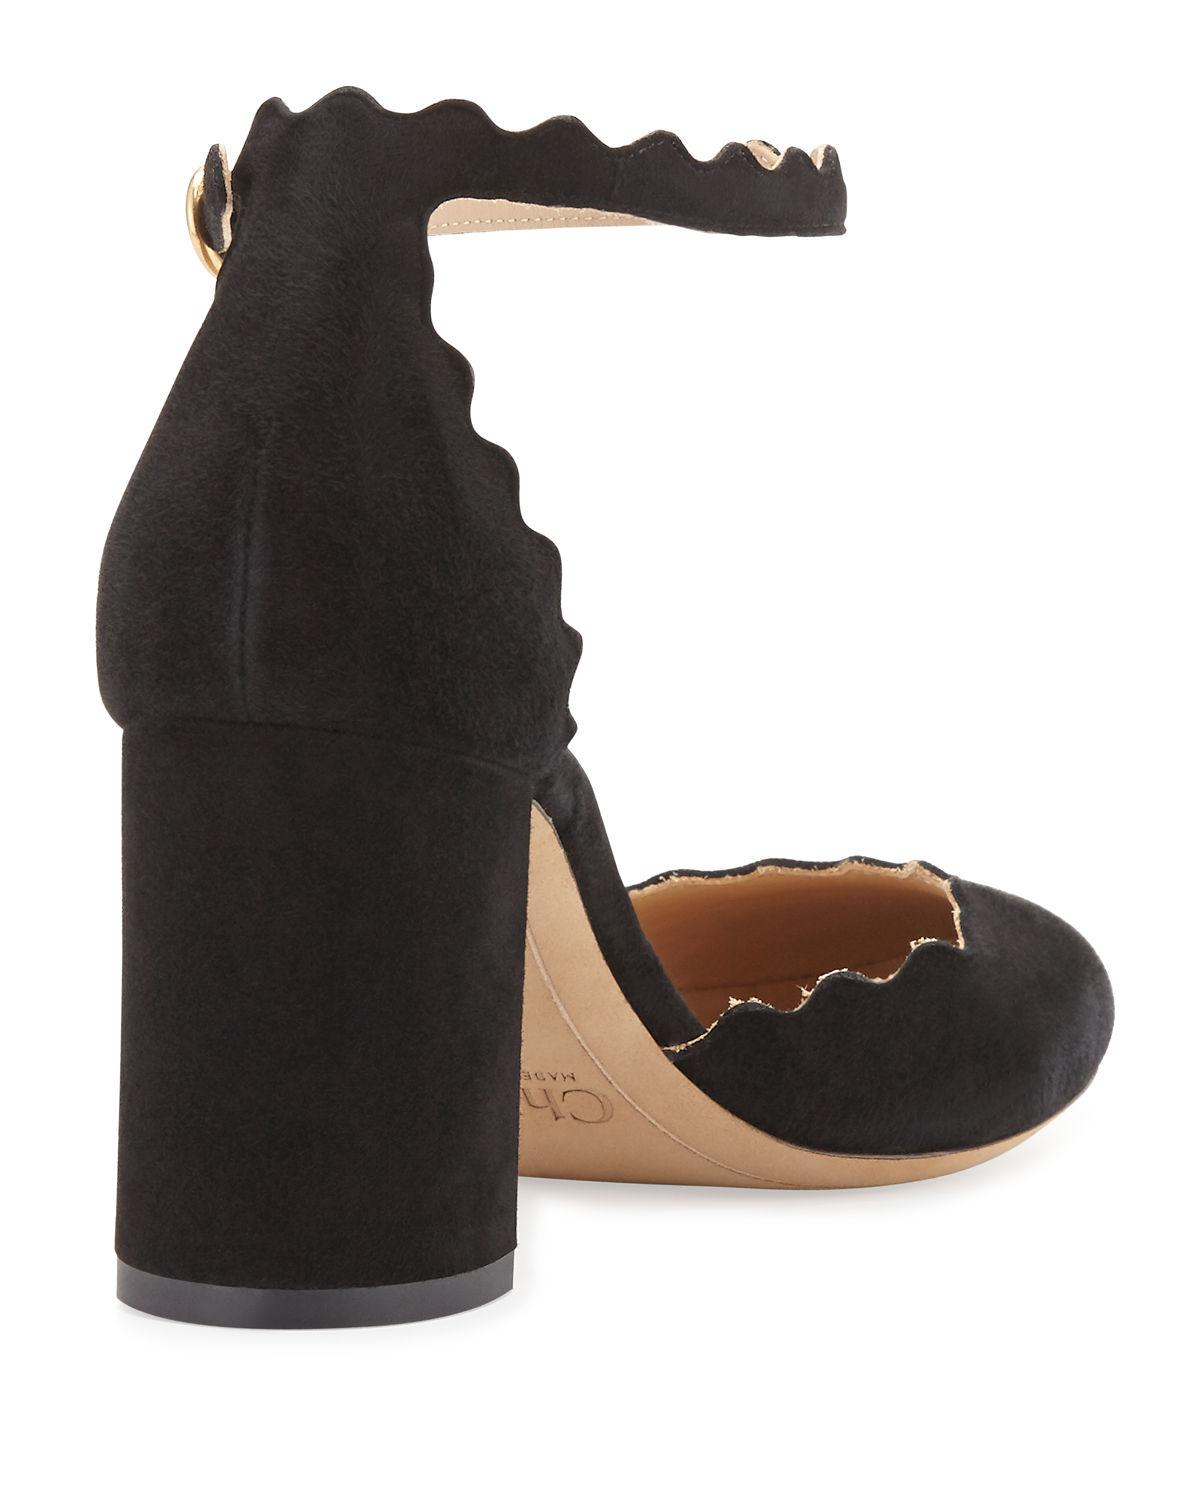 9cffb10bb46 Lyst - Chloé Lauren Scalloped D orsay Pump in Black